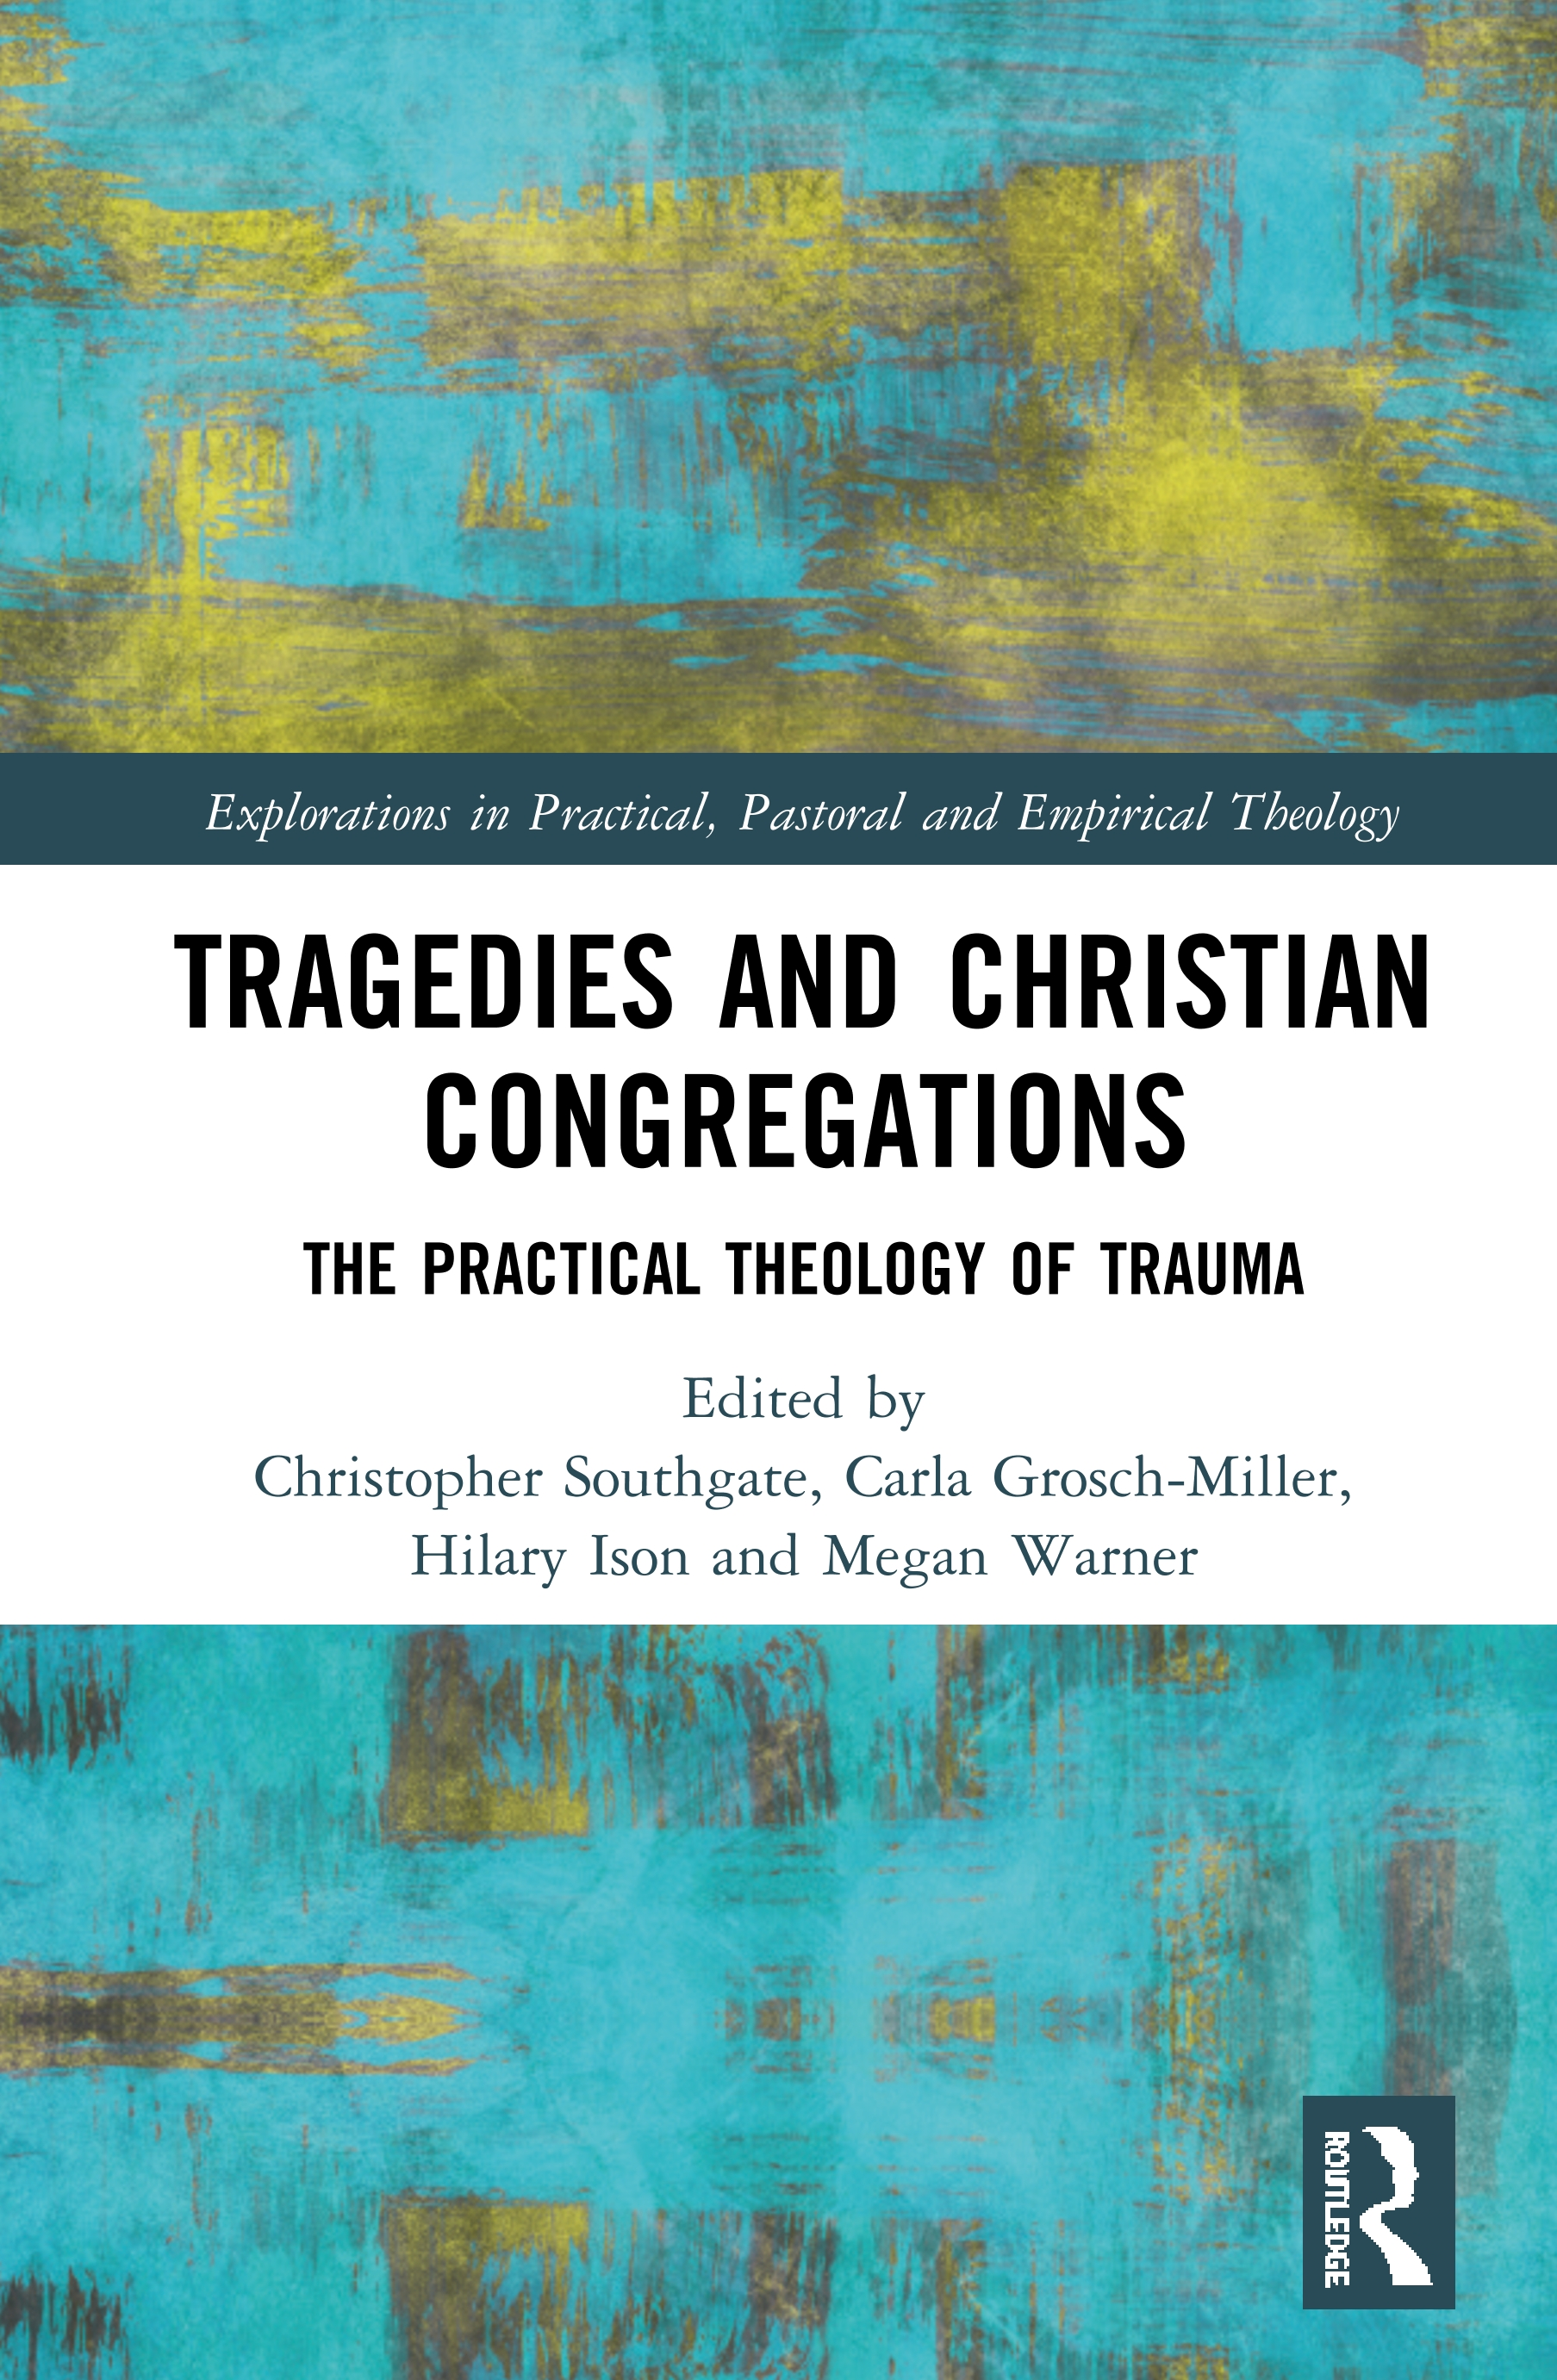 Tragedies and Christian Congregations: The Practical Theology of Trauma book cover